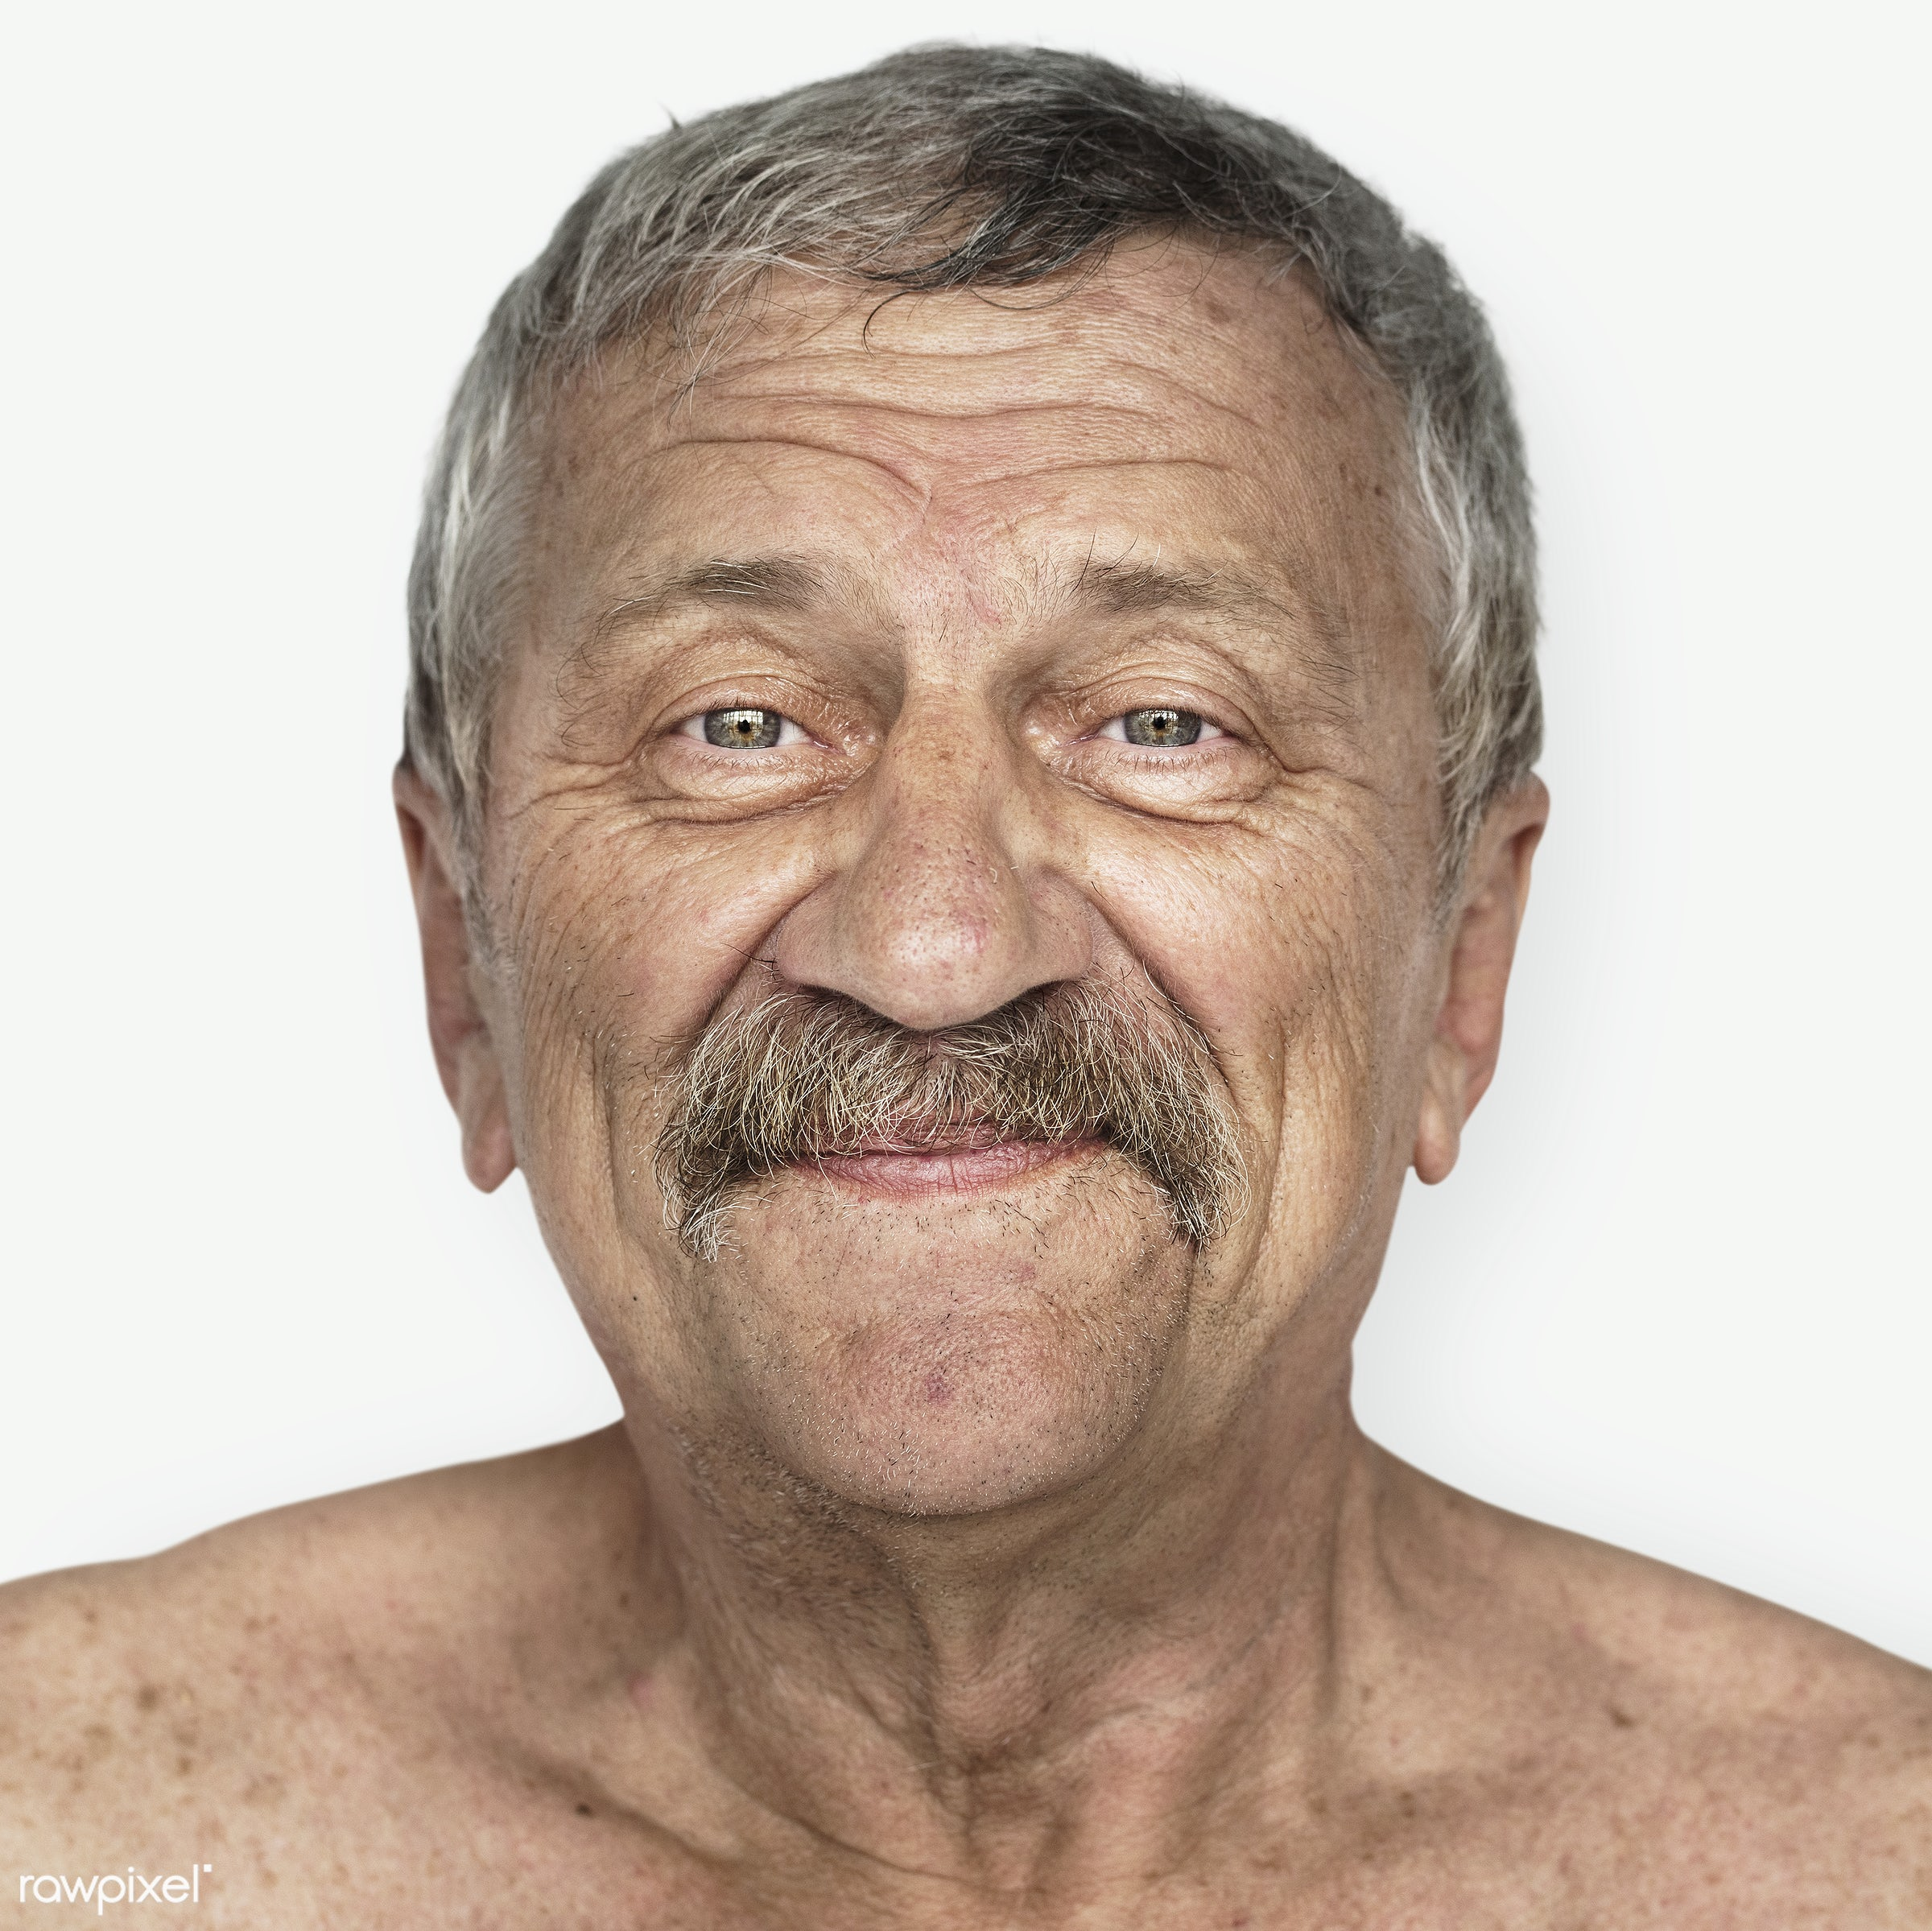 Portrait of an American man - america, american, caucasian, close up, elderly, expression, face, guy, headshot, man, person...